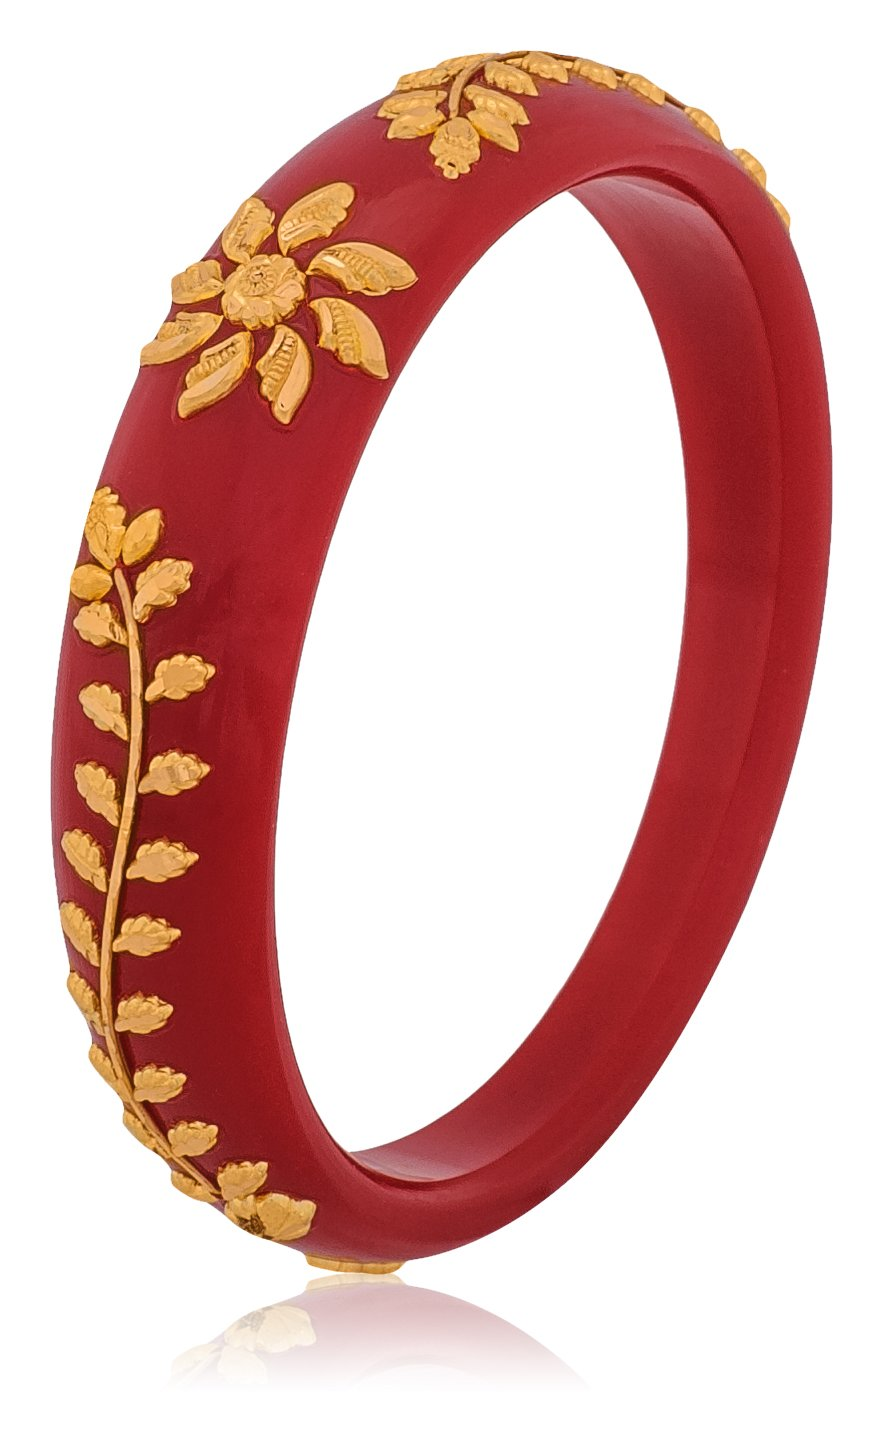 Senco Gold 22k Yellow Gold Bangle For Women Buy Online In Costa Rica Senco Gold Products In Costa Rica See Prices Reviews And Free Delivery Over 40 000 Desertcart,Graphic Design Sacramento